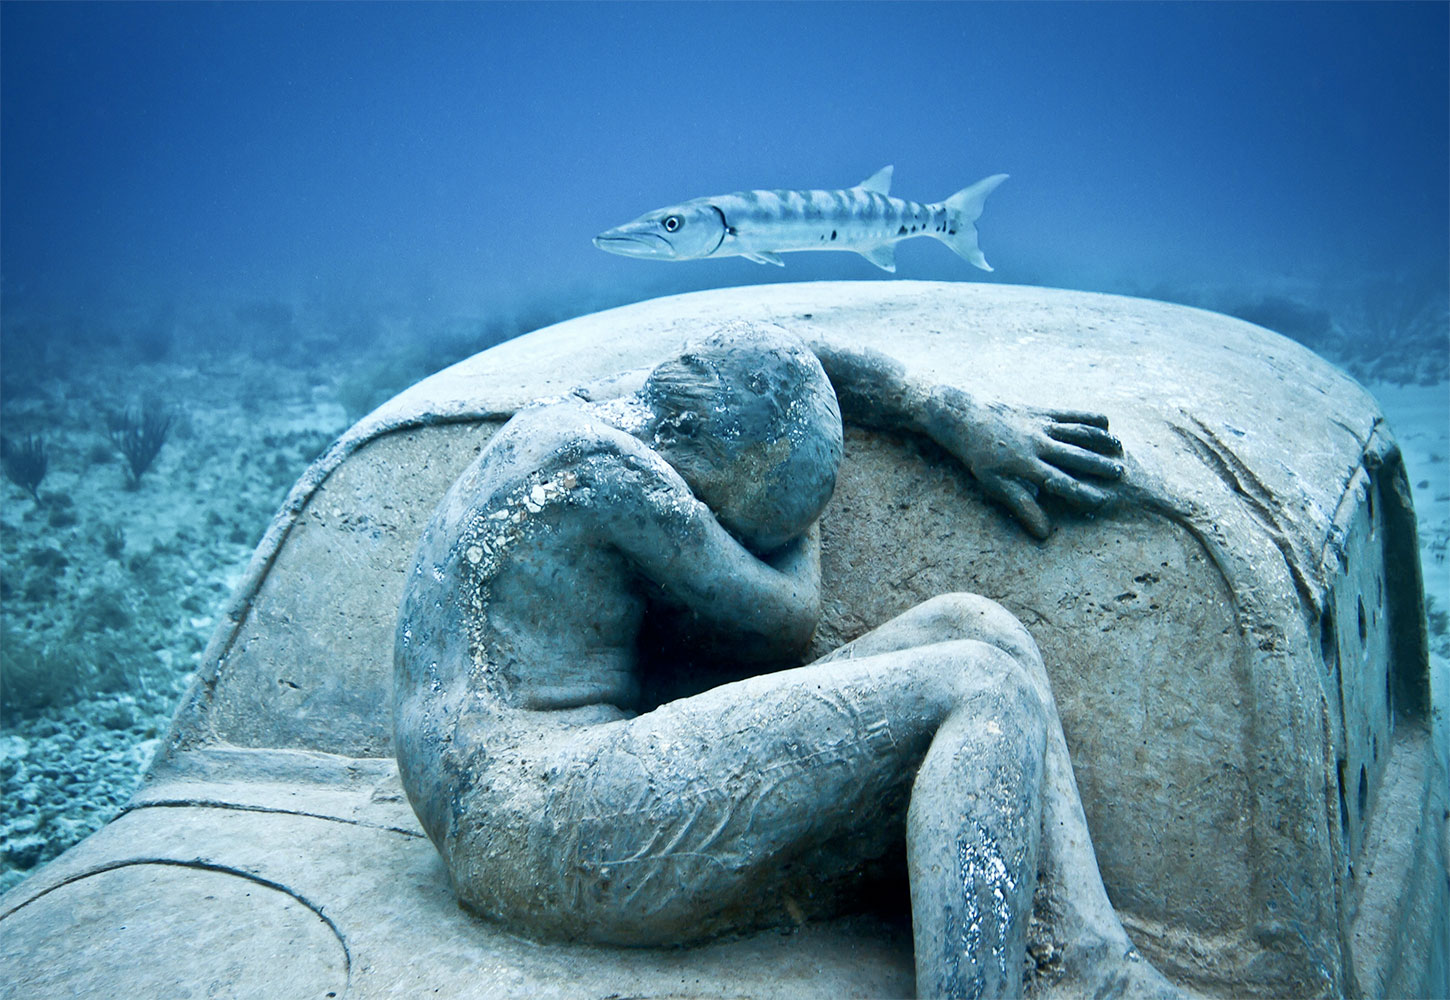 Anthropocene, by Jason deCaires Taylor